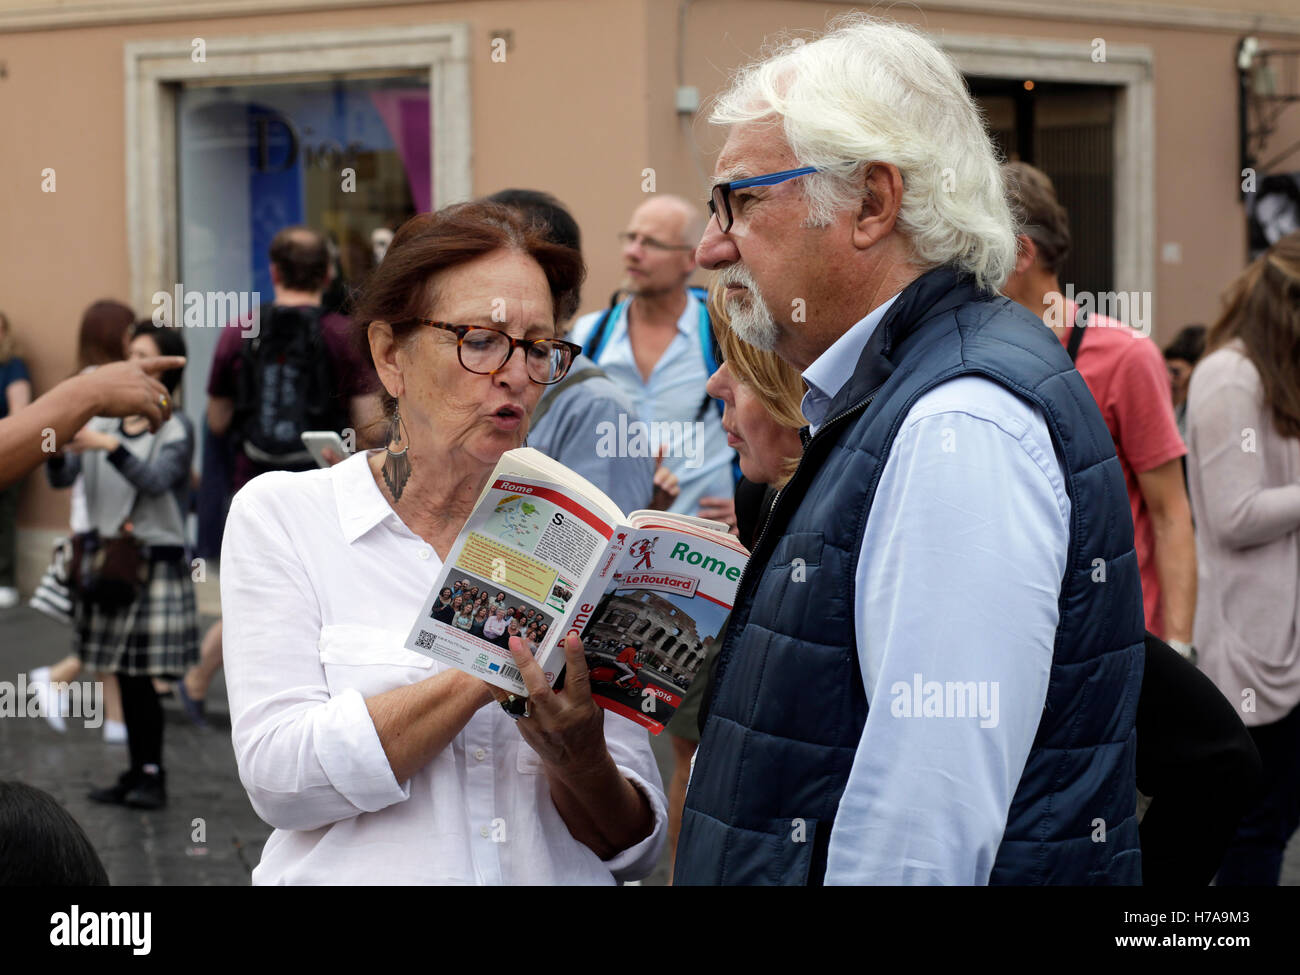 Caucasian couple reading a travel guide of Rome, Italy - Stock Image